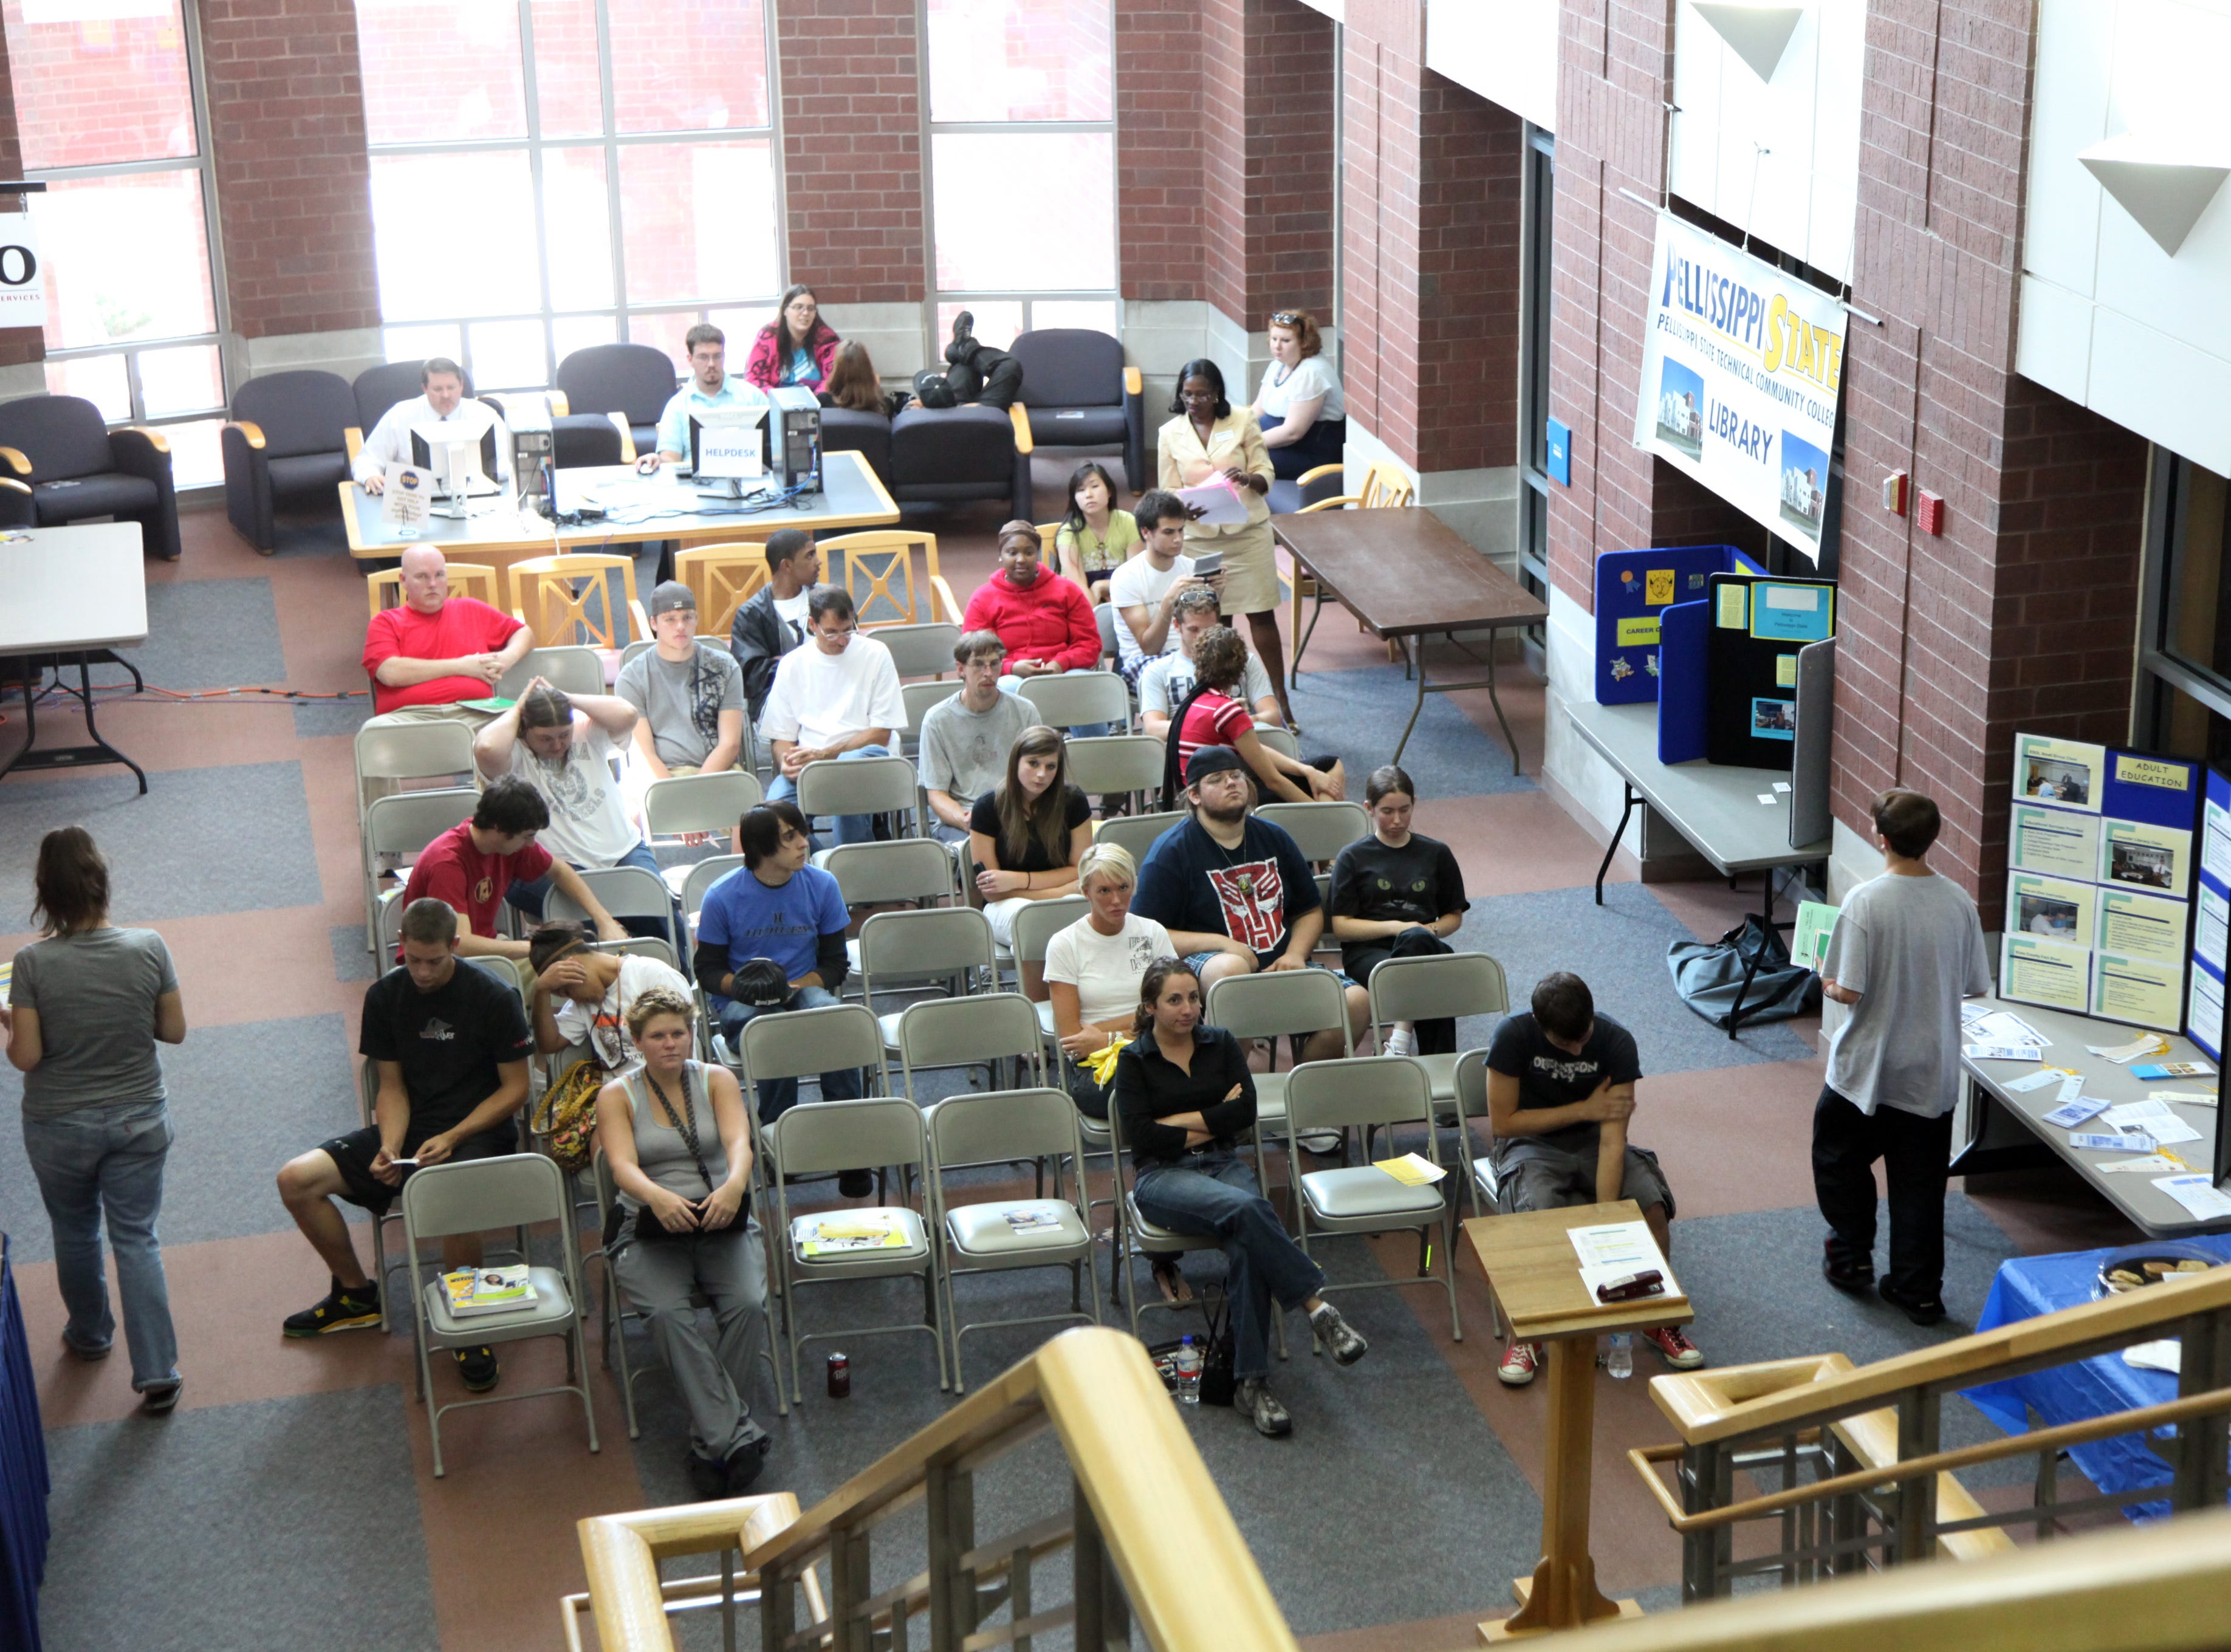 New students wait to enroll in classes inside Pellissippi State Community College's Educational Resource Center Monday, August 24, 2009.  Enrollment is up 25 percent this year.